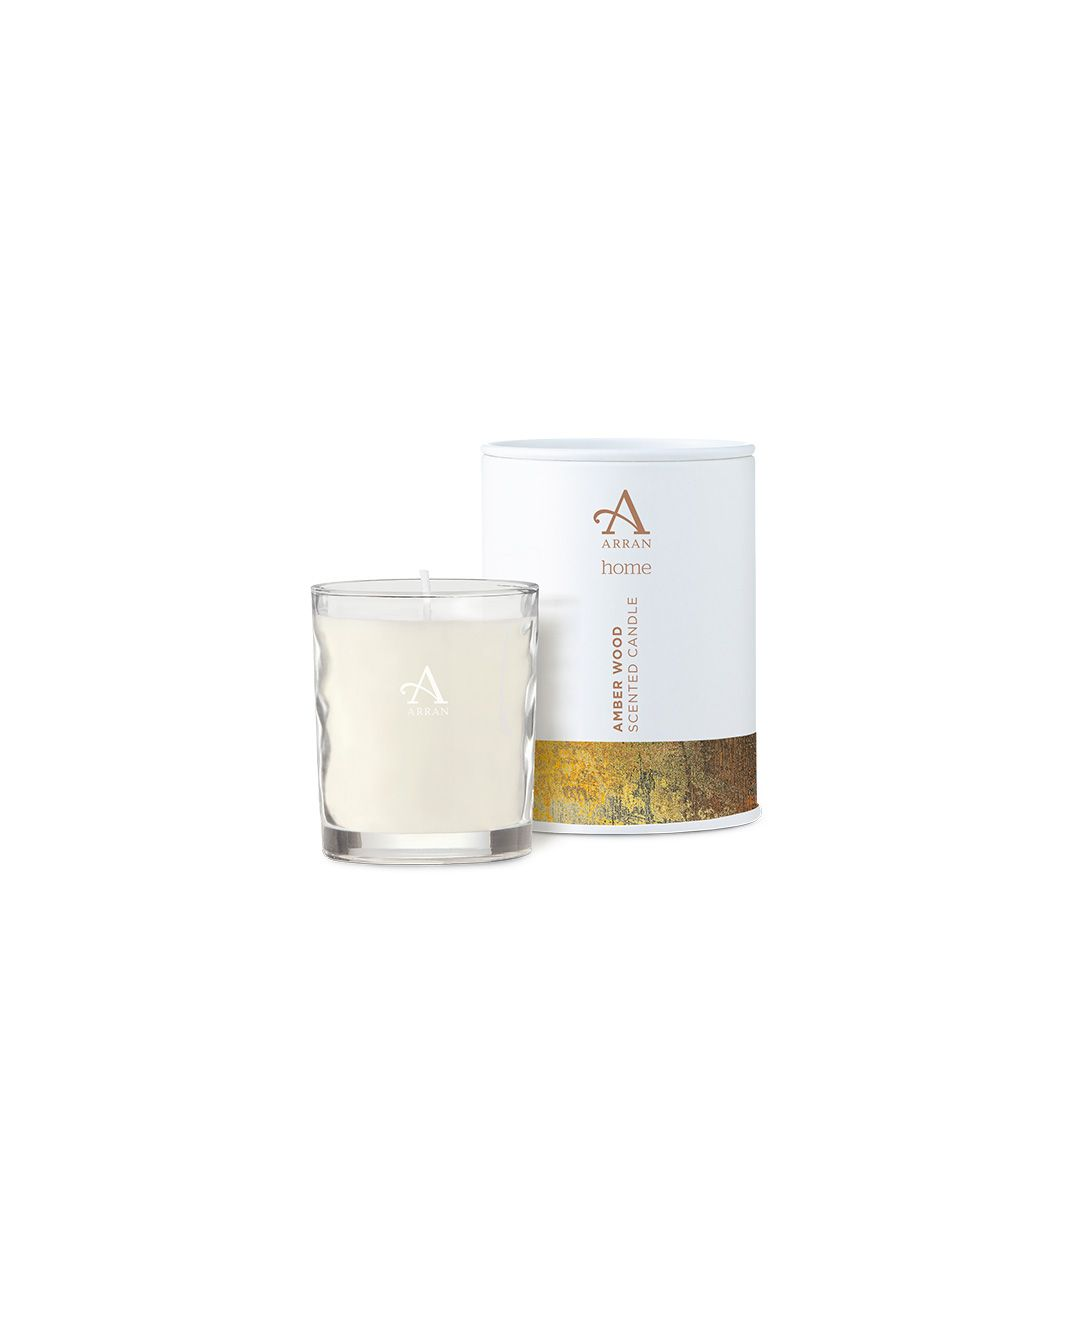 Arran Aromatics Amberwood Candle in Tin 8cl